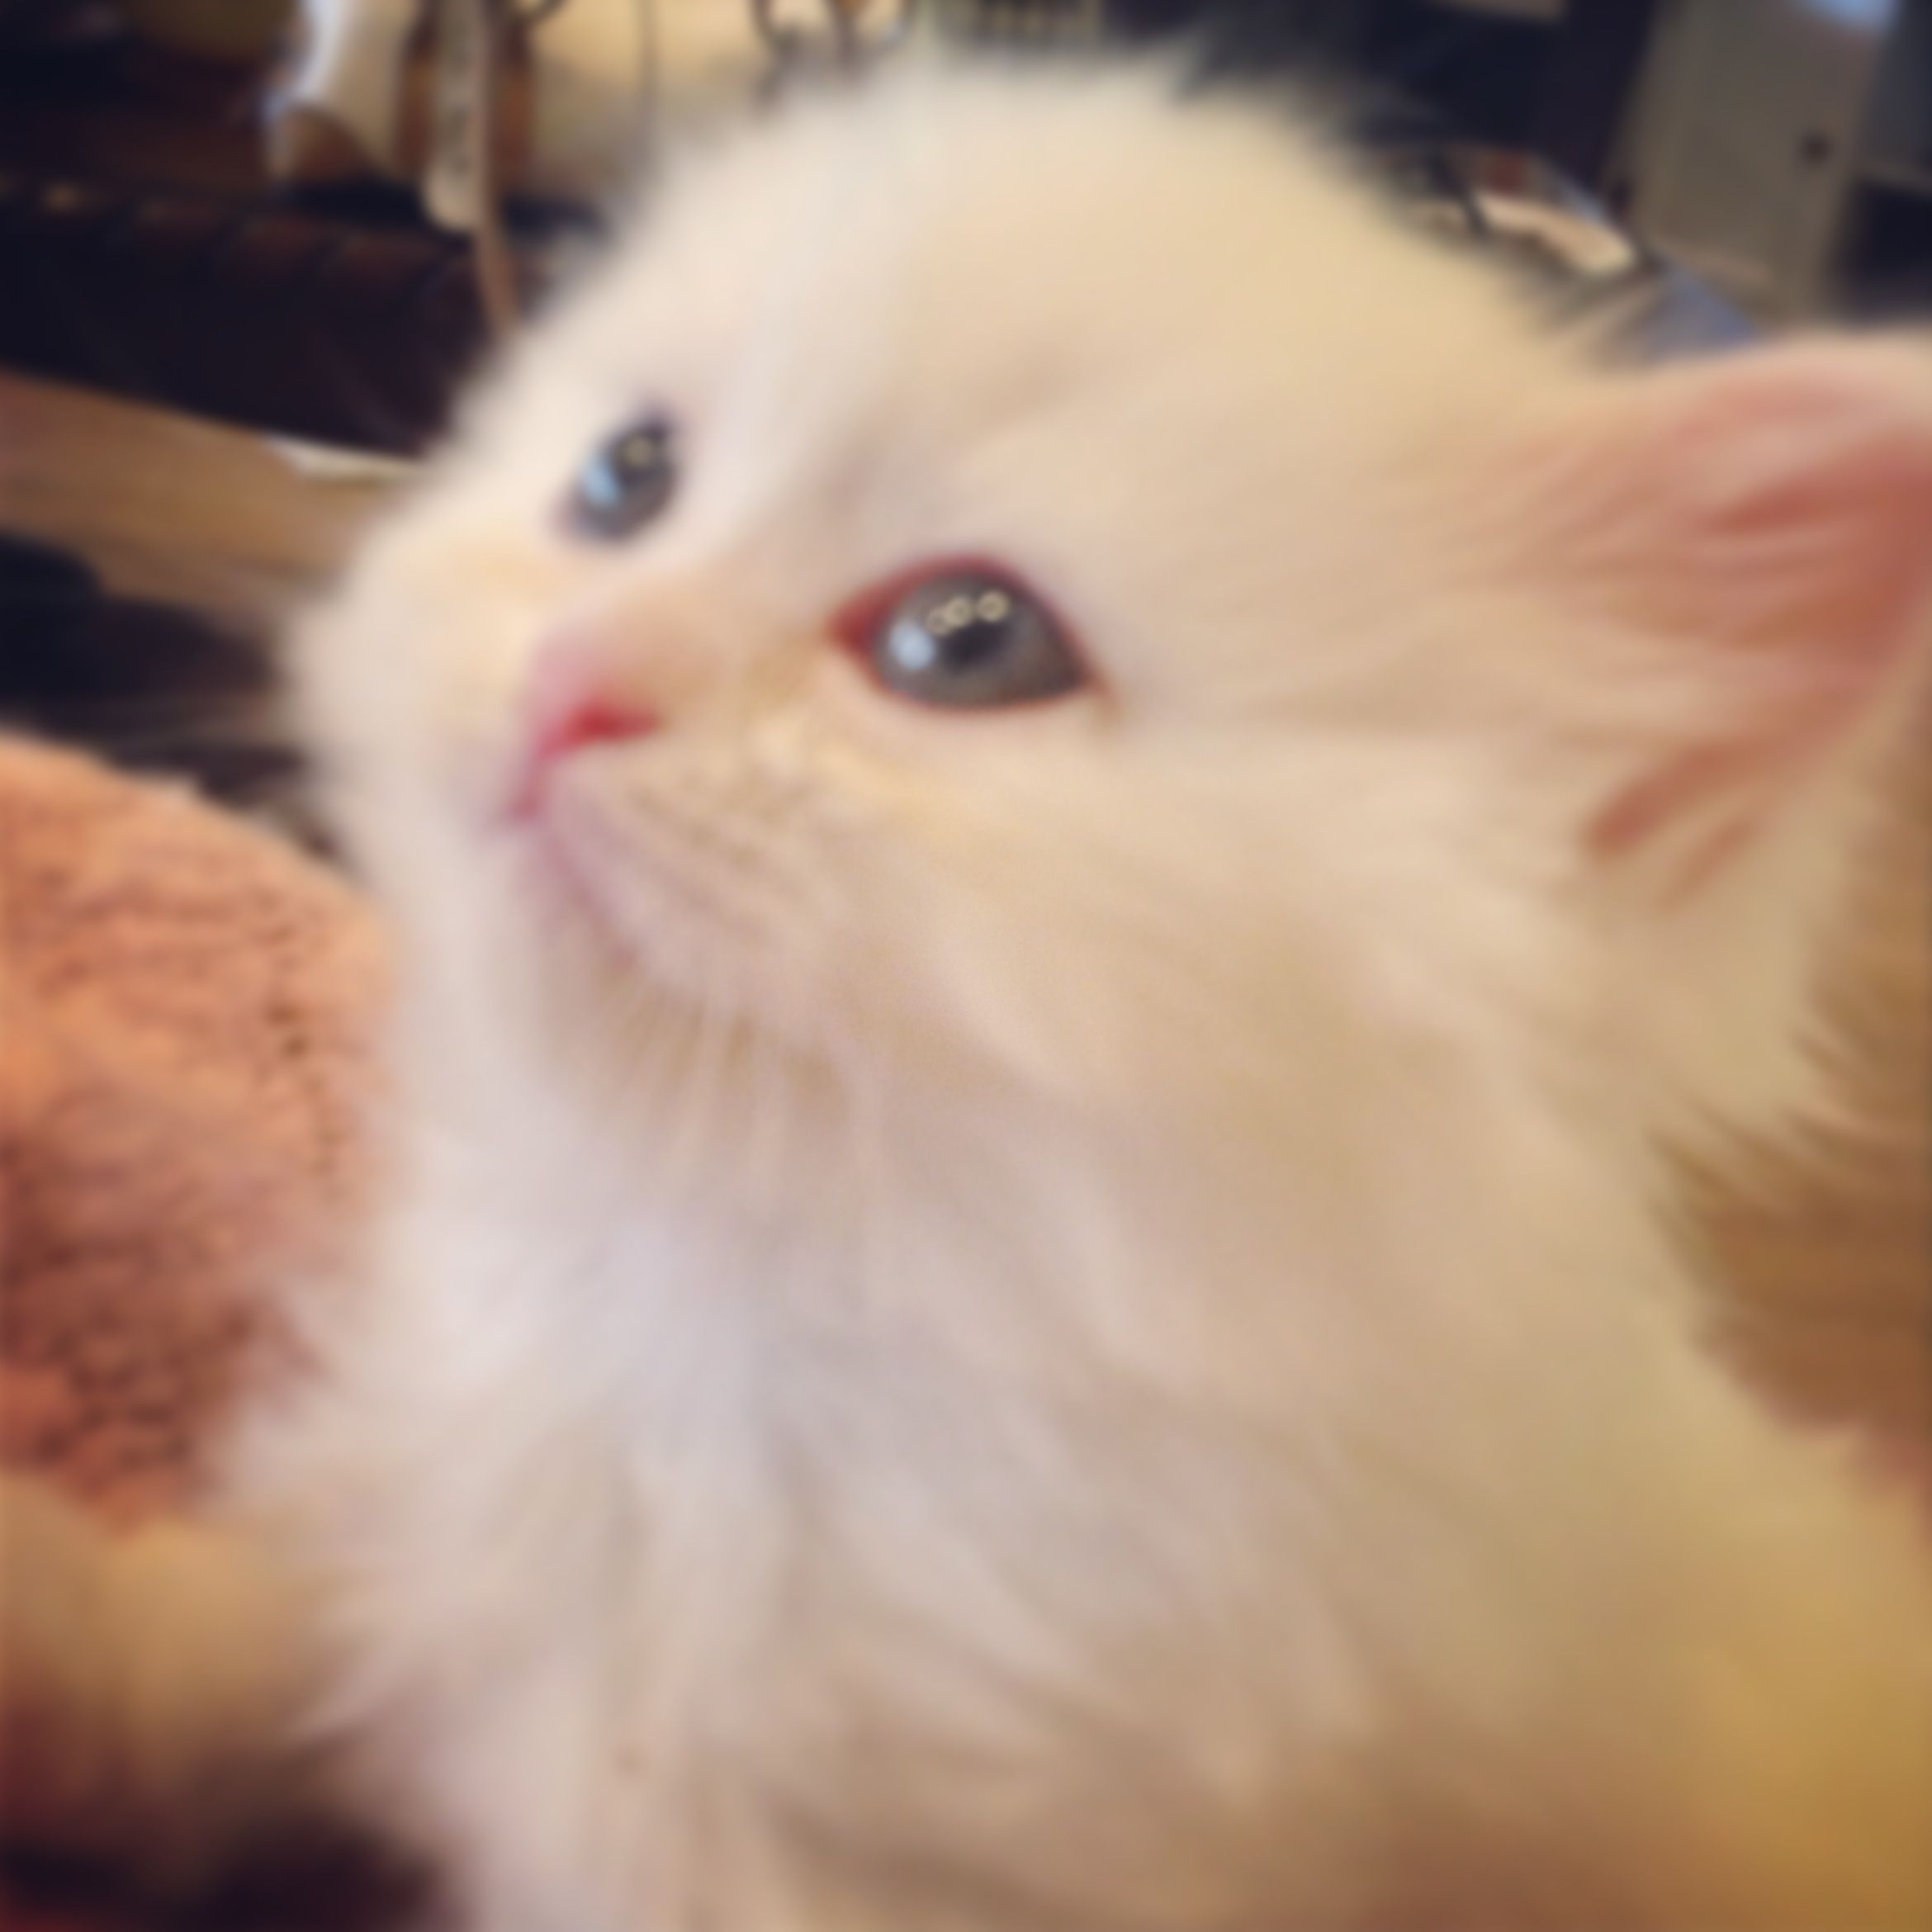 New Litter We Have 3 White Doll Face Persian Kittens Just Born They Will Have Blue Or Green Persian Kittens Persian Kittens For Sale Teacup Persian Kittens